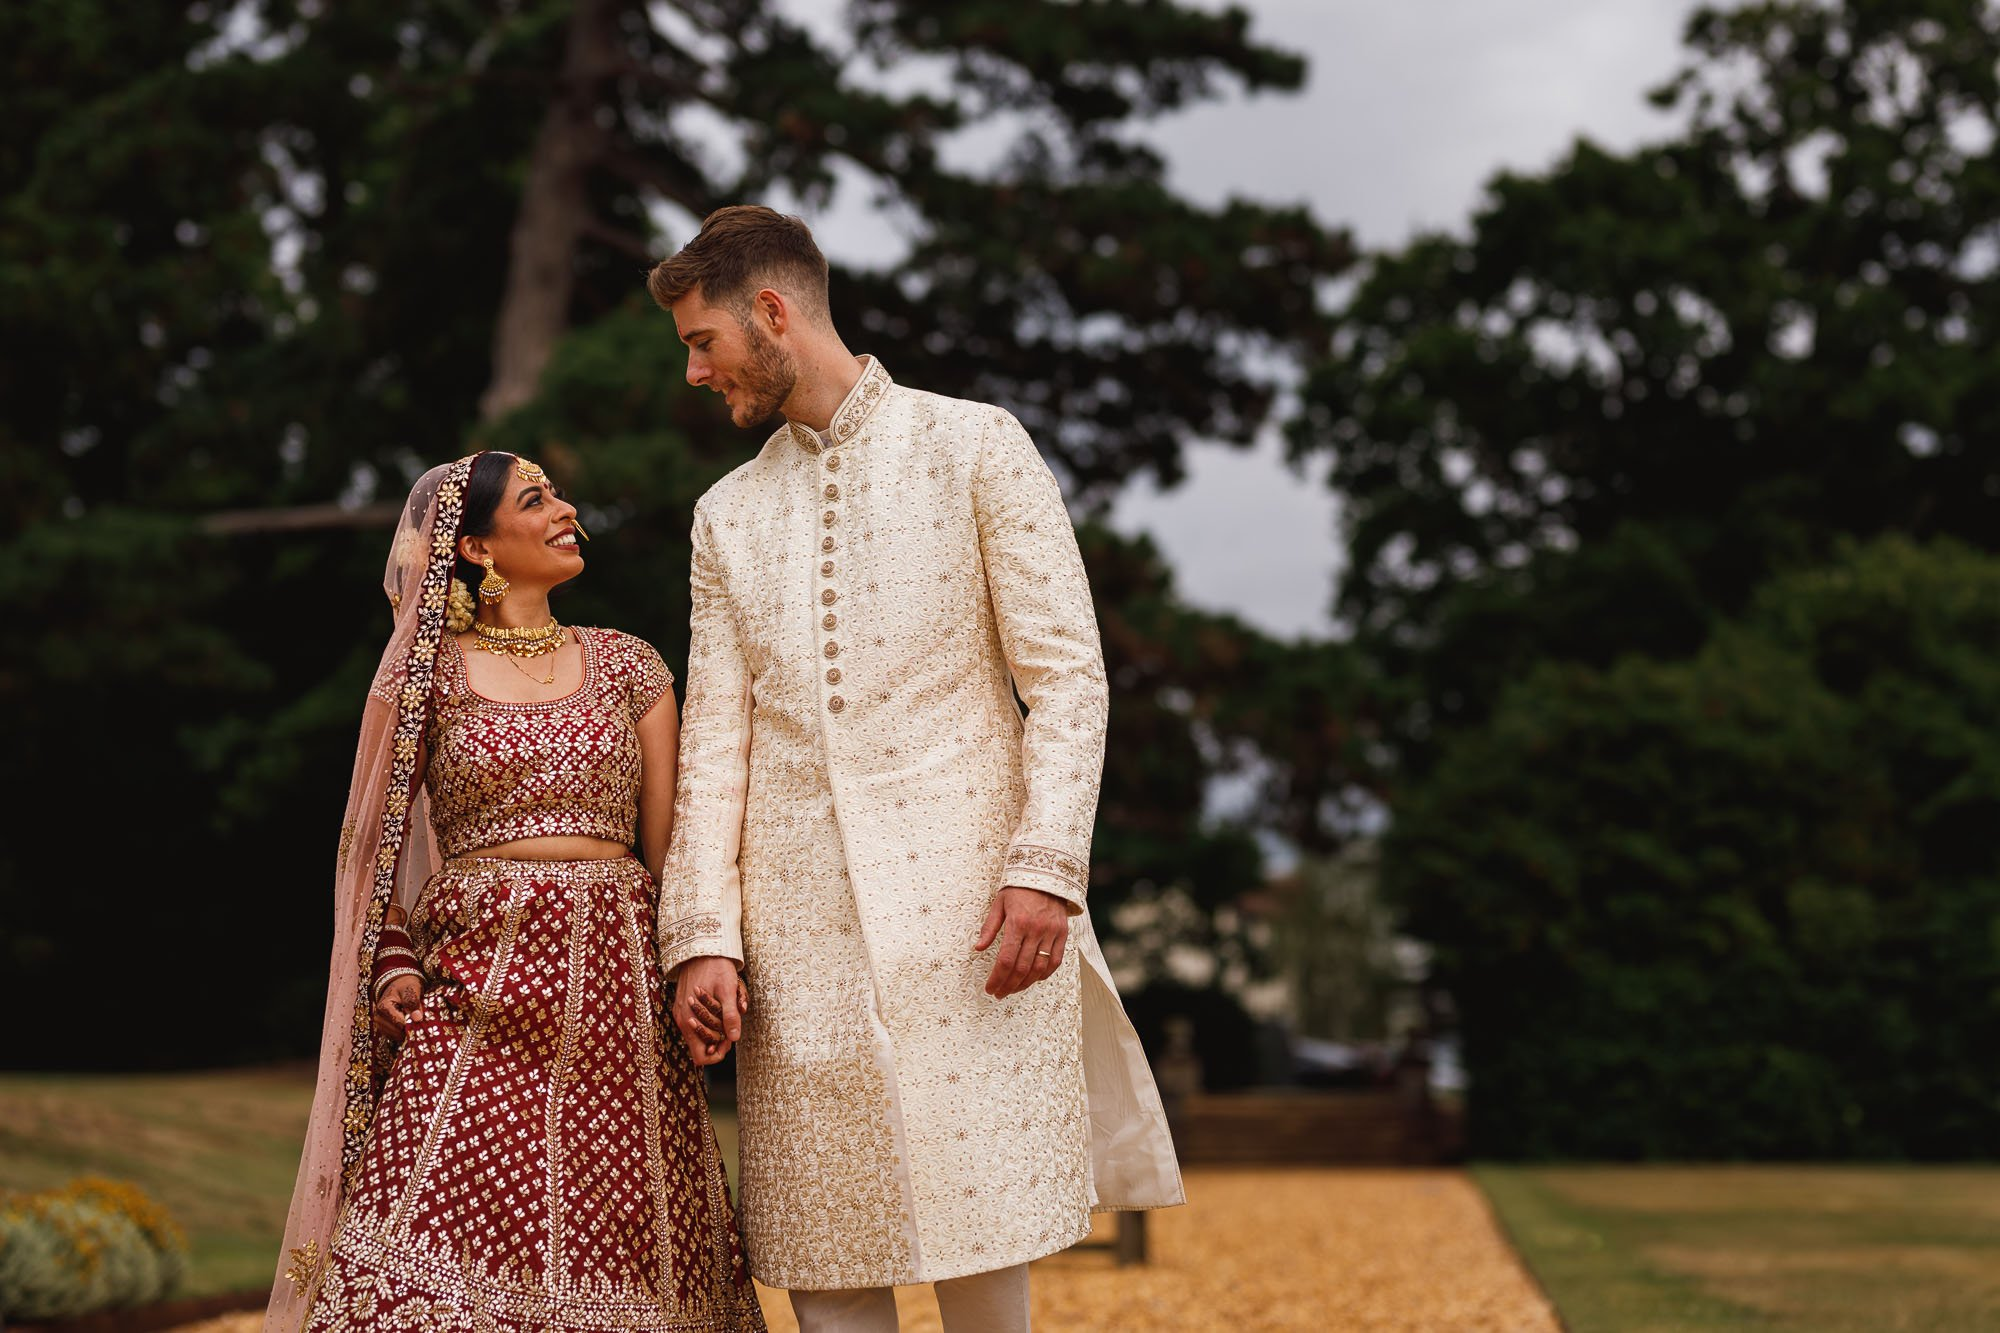 De Vere Wokefield Estate, Asian wedding photographer, grooms entrance, bride and groom portrait